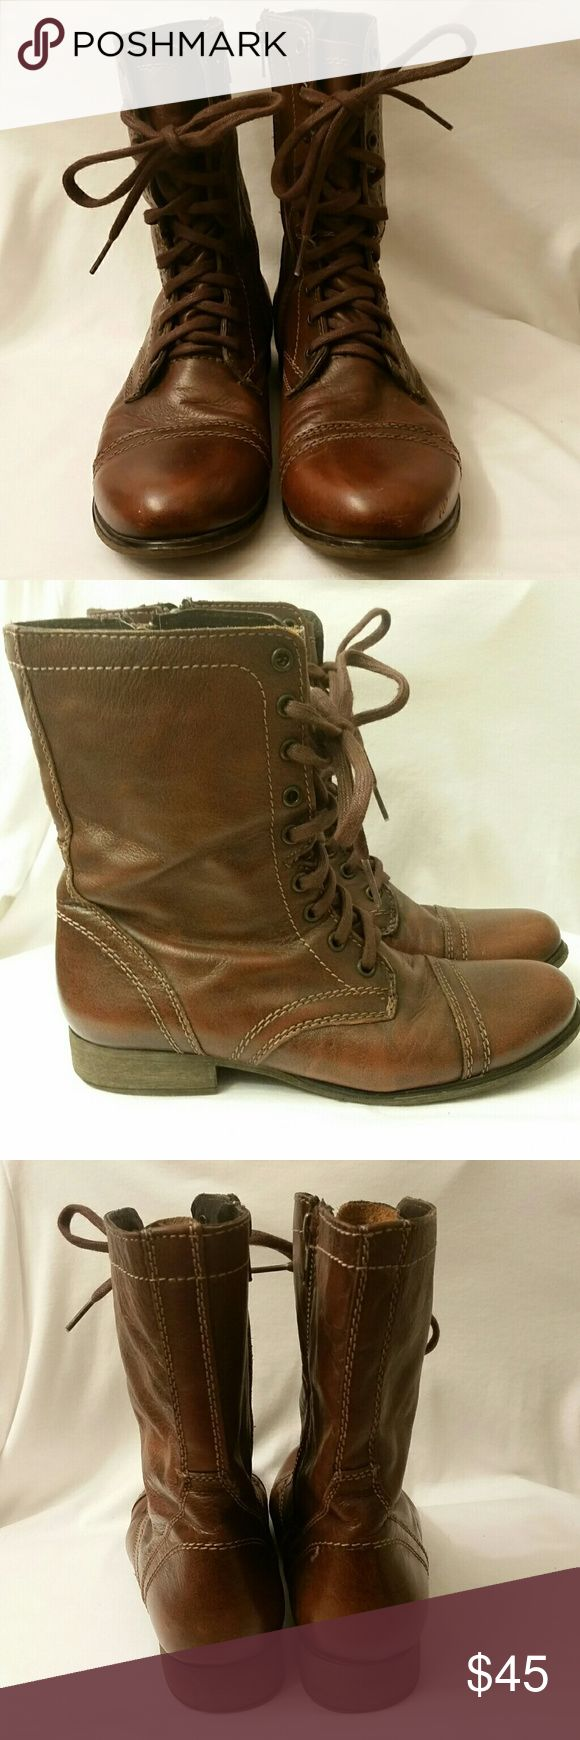 Steve Madden Combat Boots I have these gorgeous Steve Madden combat boots for sale in excellent condition. sz 9 rich brown color. There are a few stiches missing (see picture) Steve Madden Shoes